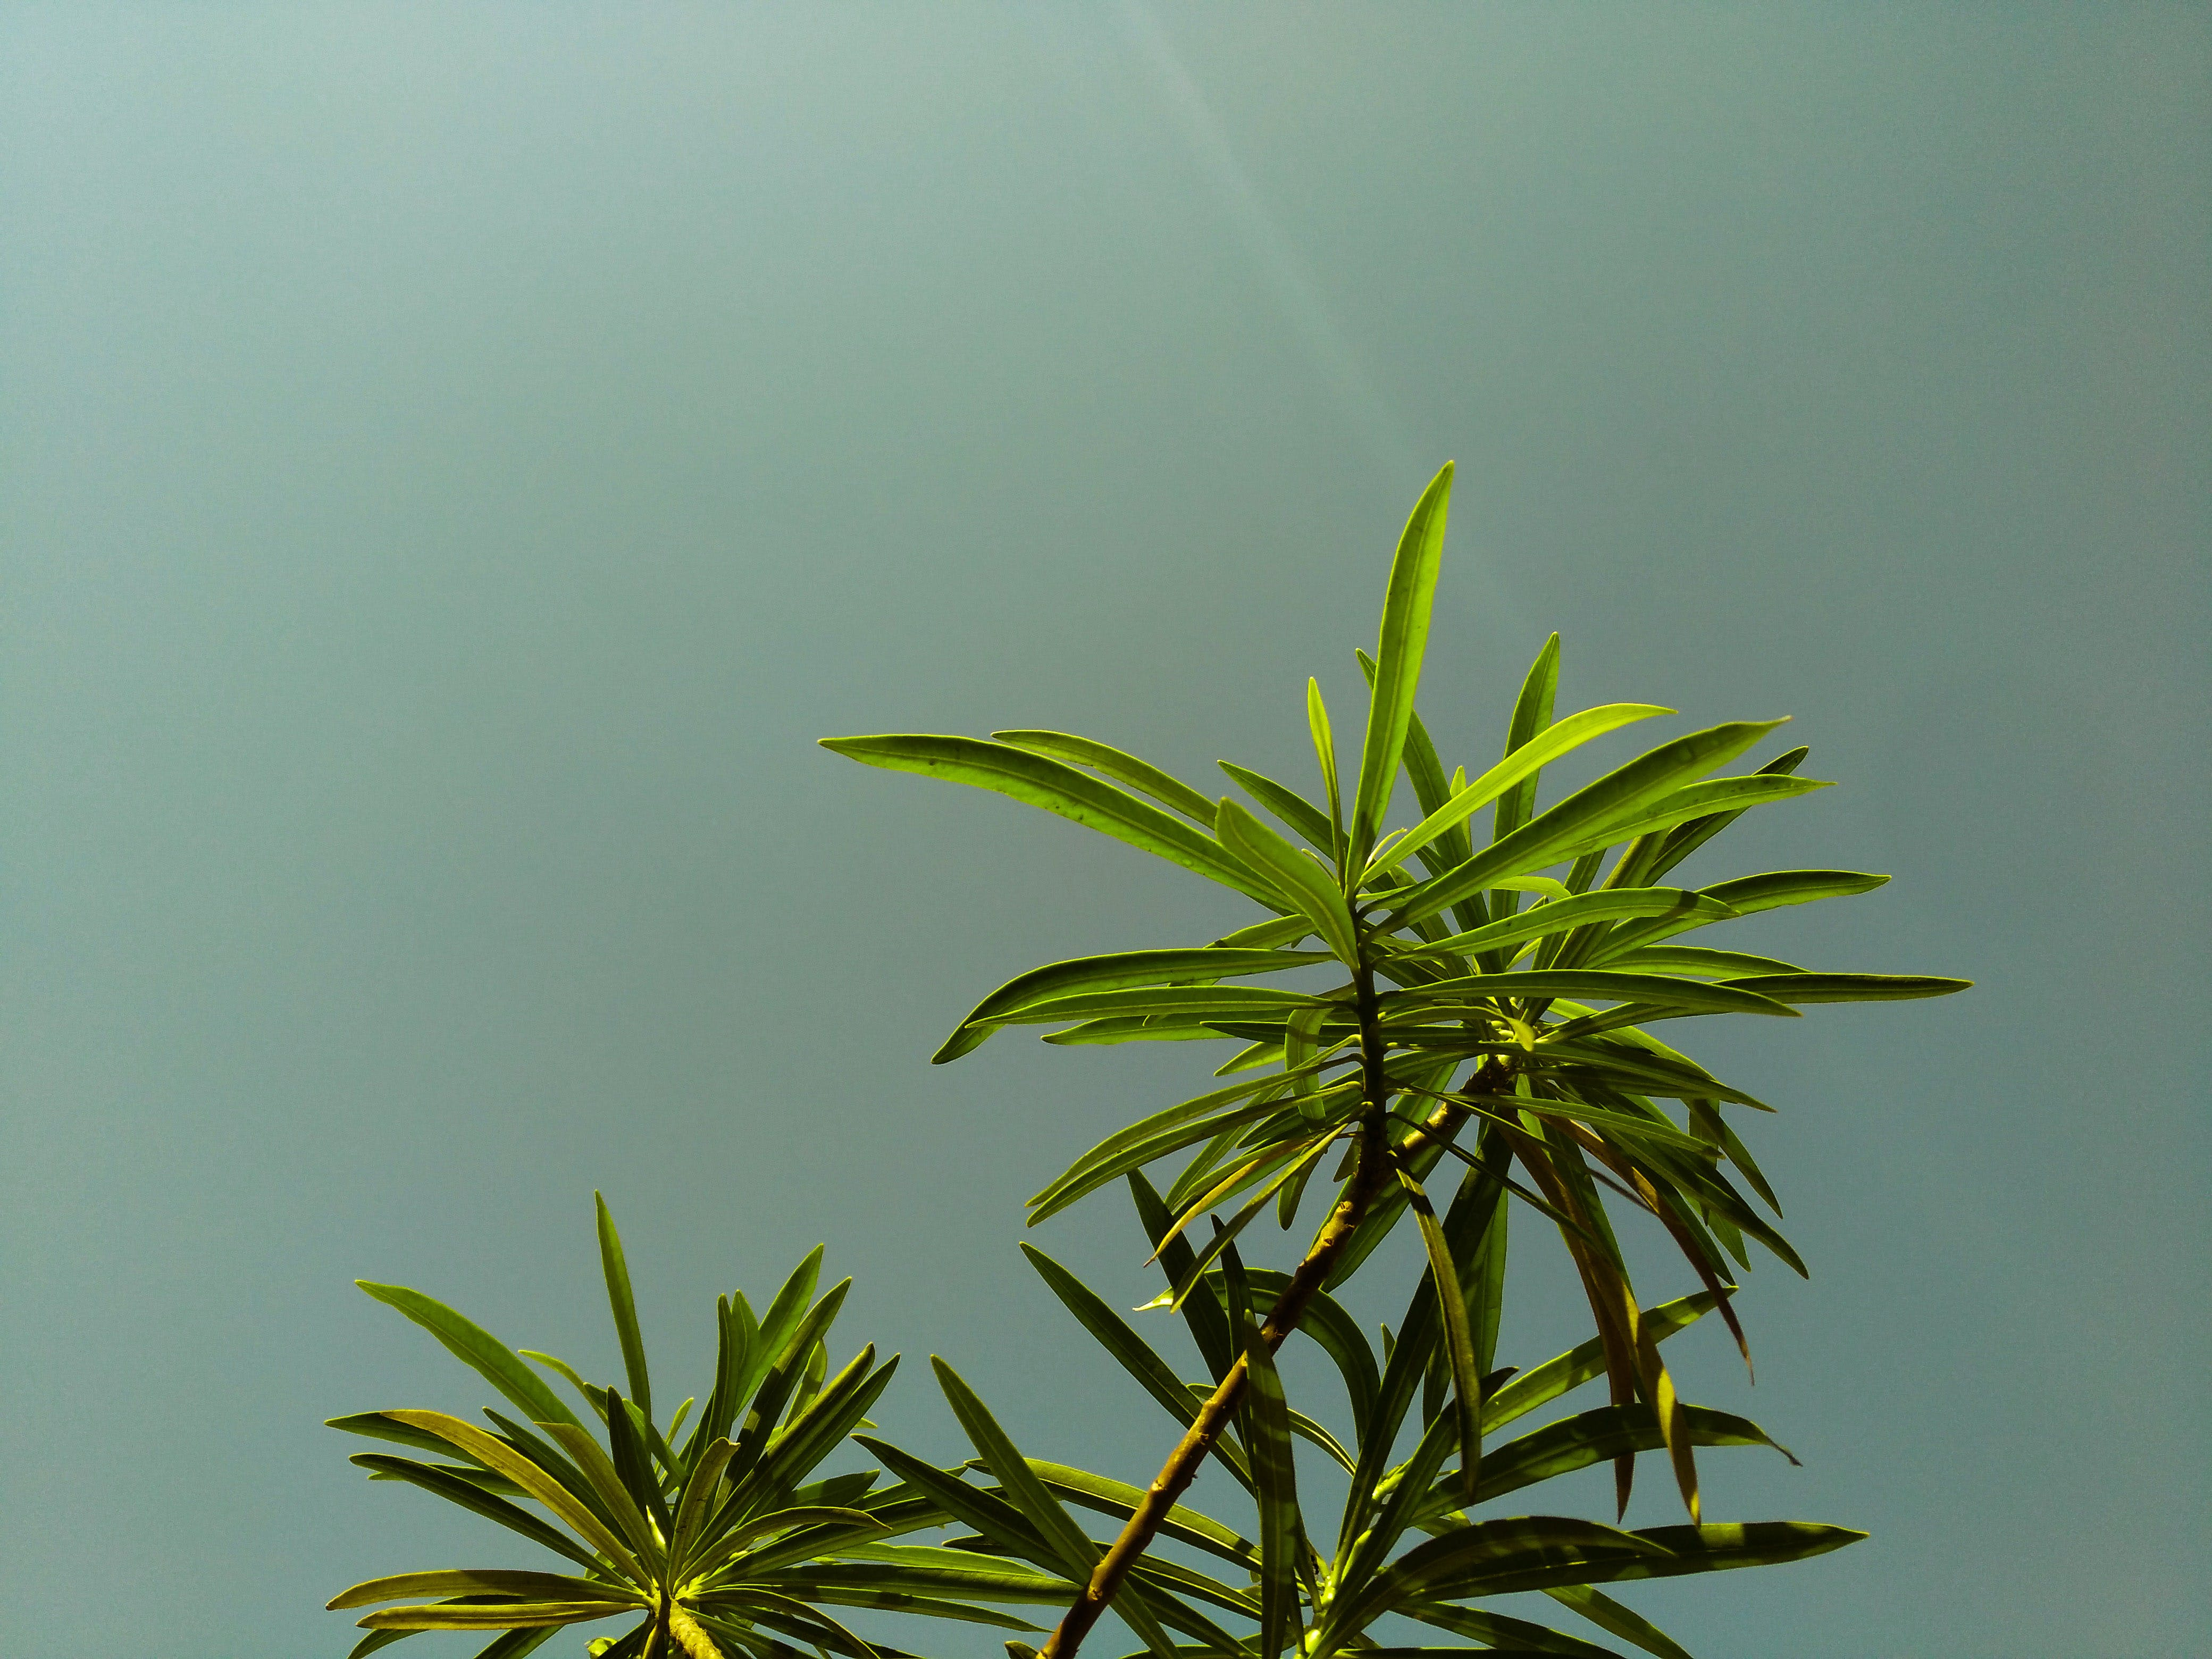 Low Angle Shot of Green Leaf Plant Under Gray Sky